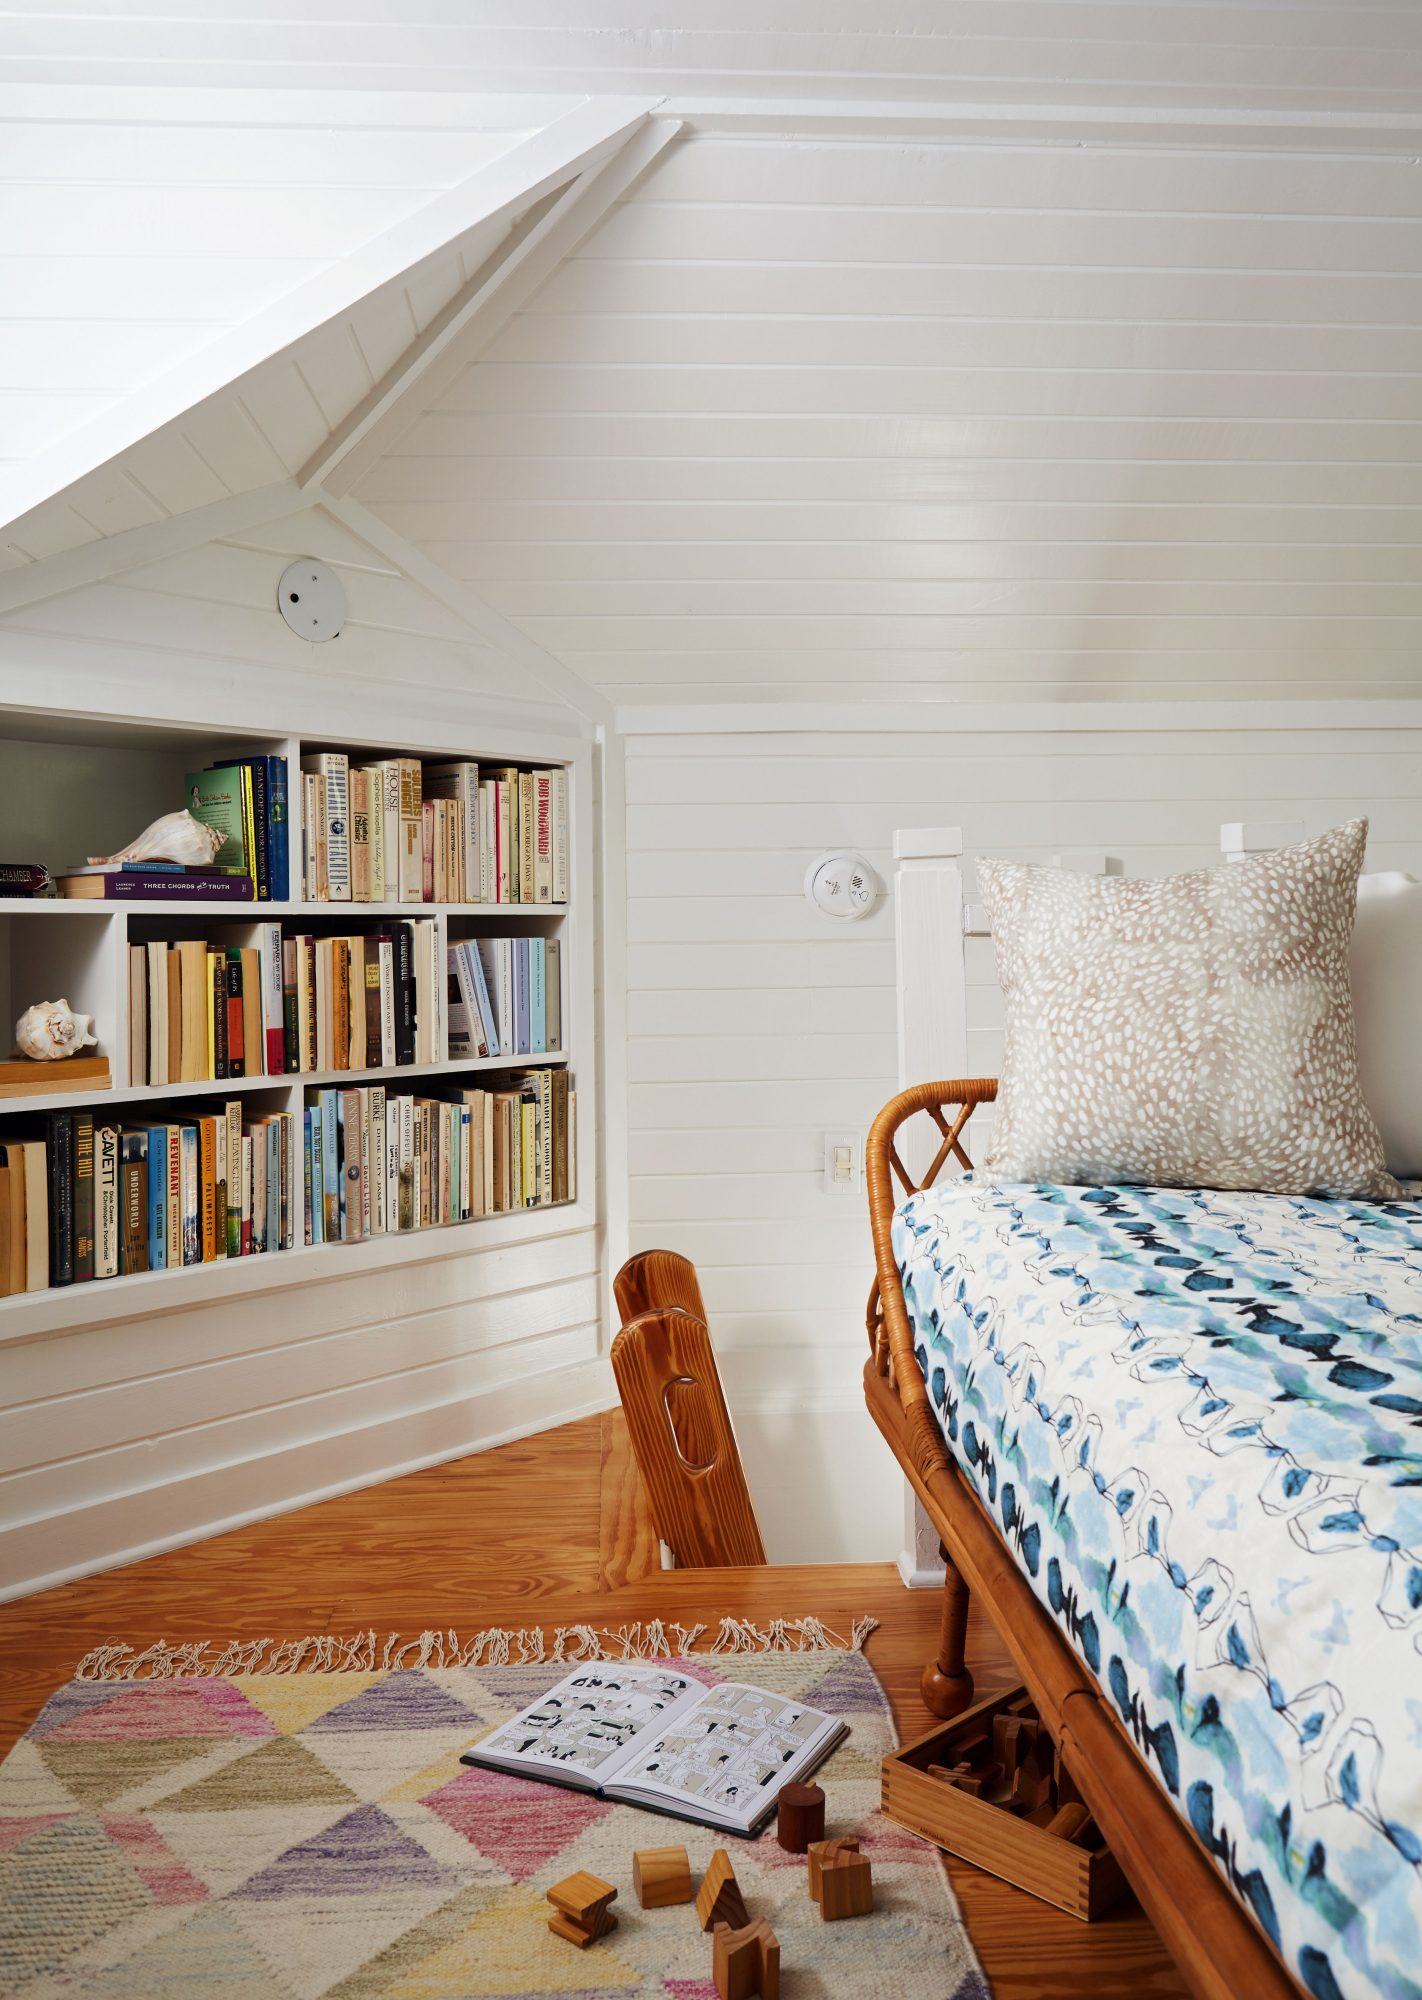 600 Square Foot Beach Cottage Reading Loft with Day Bed and Bookshelves